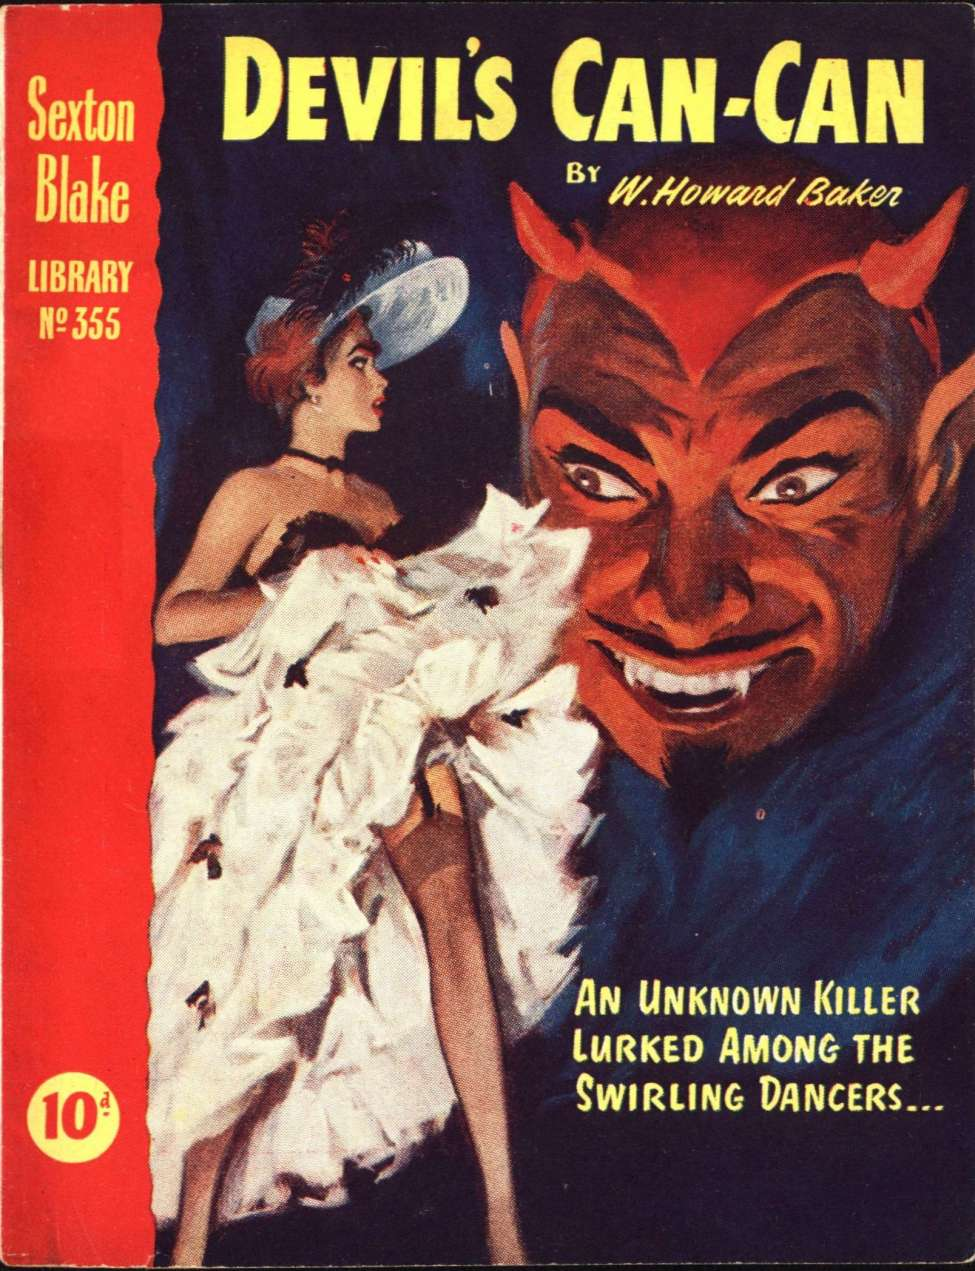 Comic Book Cover For Sexton Blake Library S3 355 - Devil's Can-Can